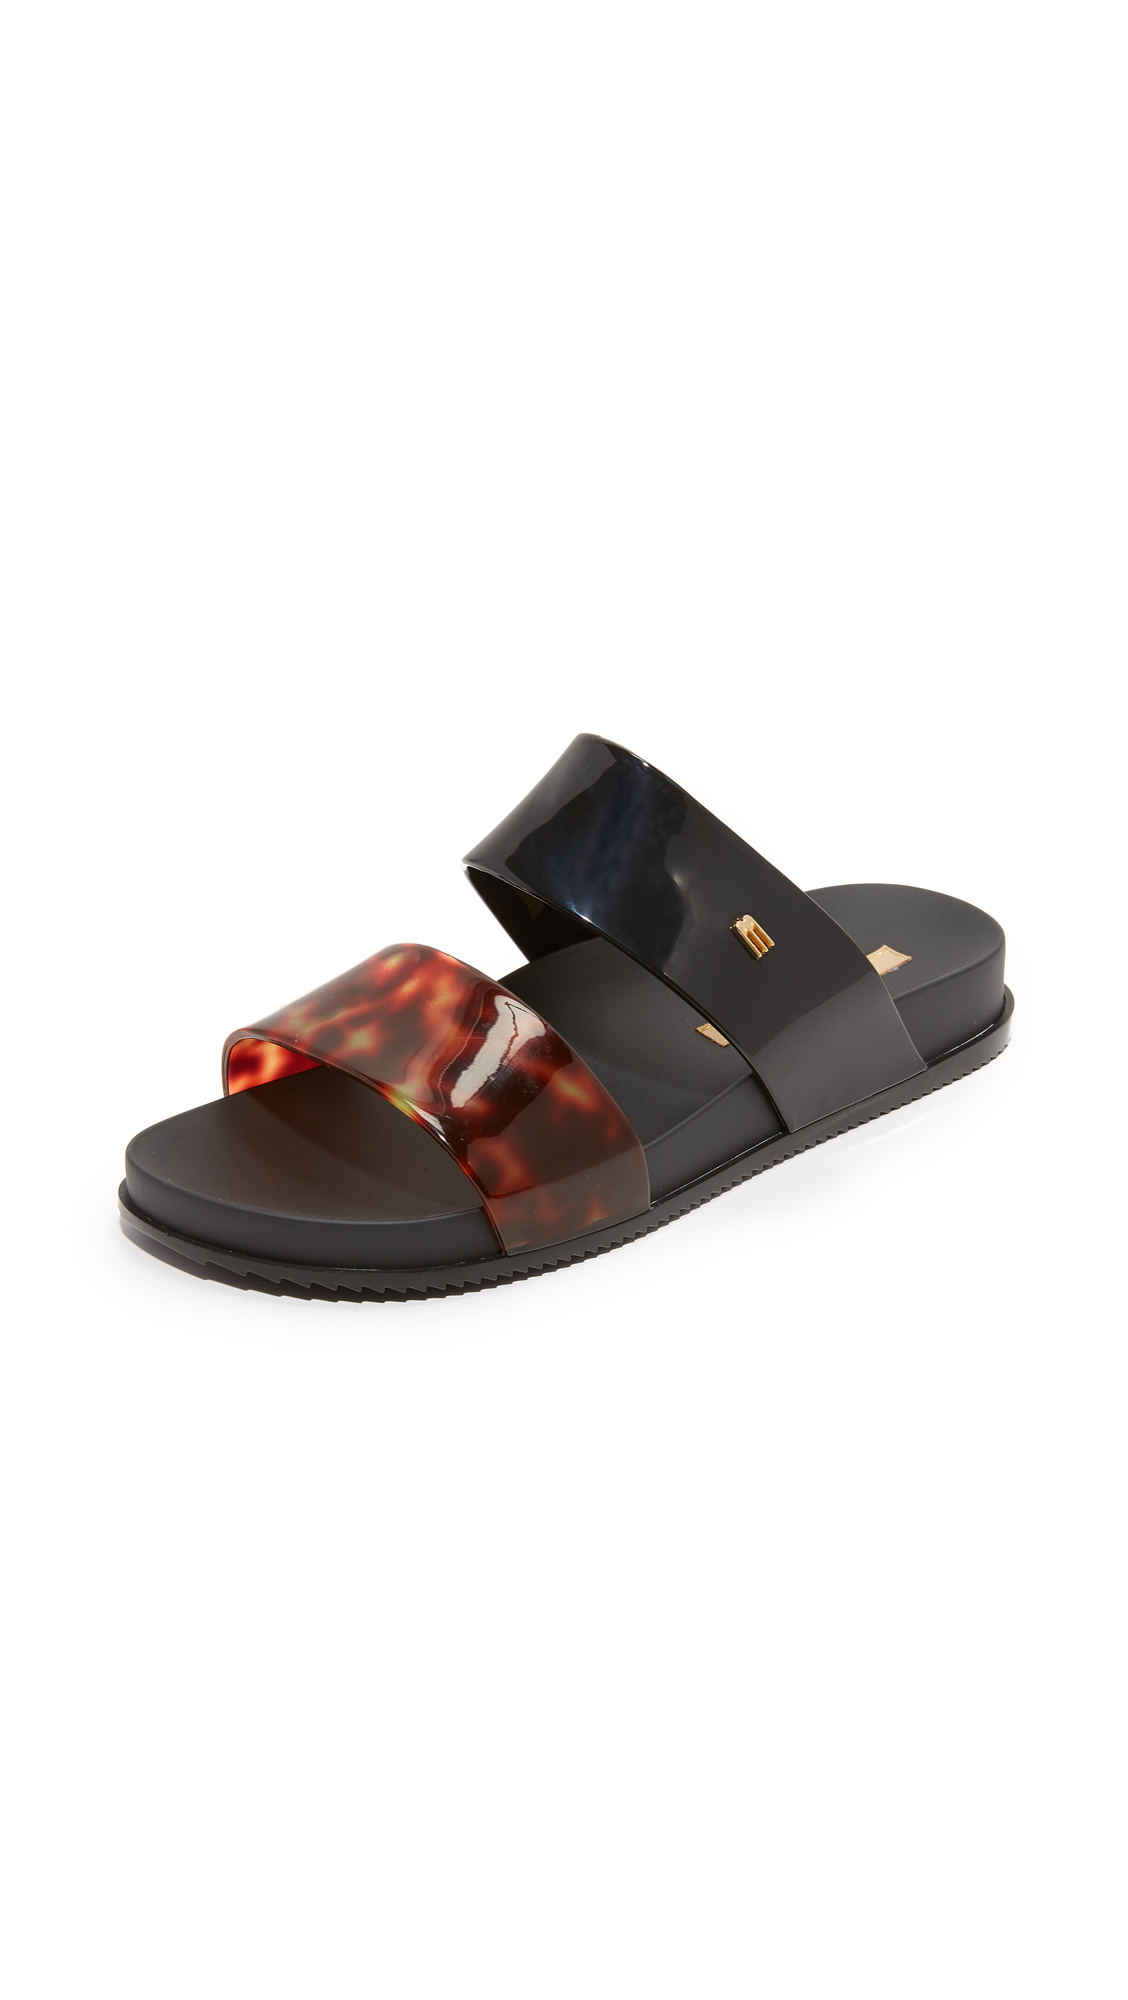 Casual Melissa slide sandals in a two strap silhouette. Inset molded footbed and ridged rubber sole. Fabric: PVC. Imported, Brazil. This item cannot be gift boxed. Available sizes: 5,6